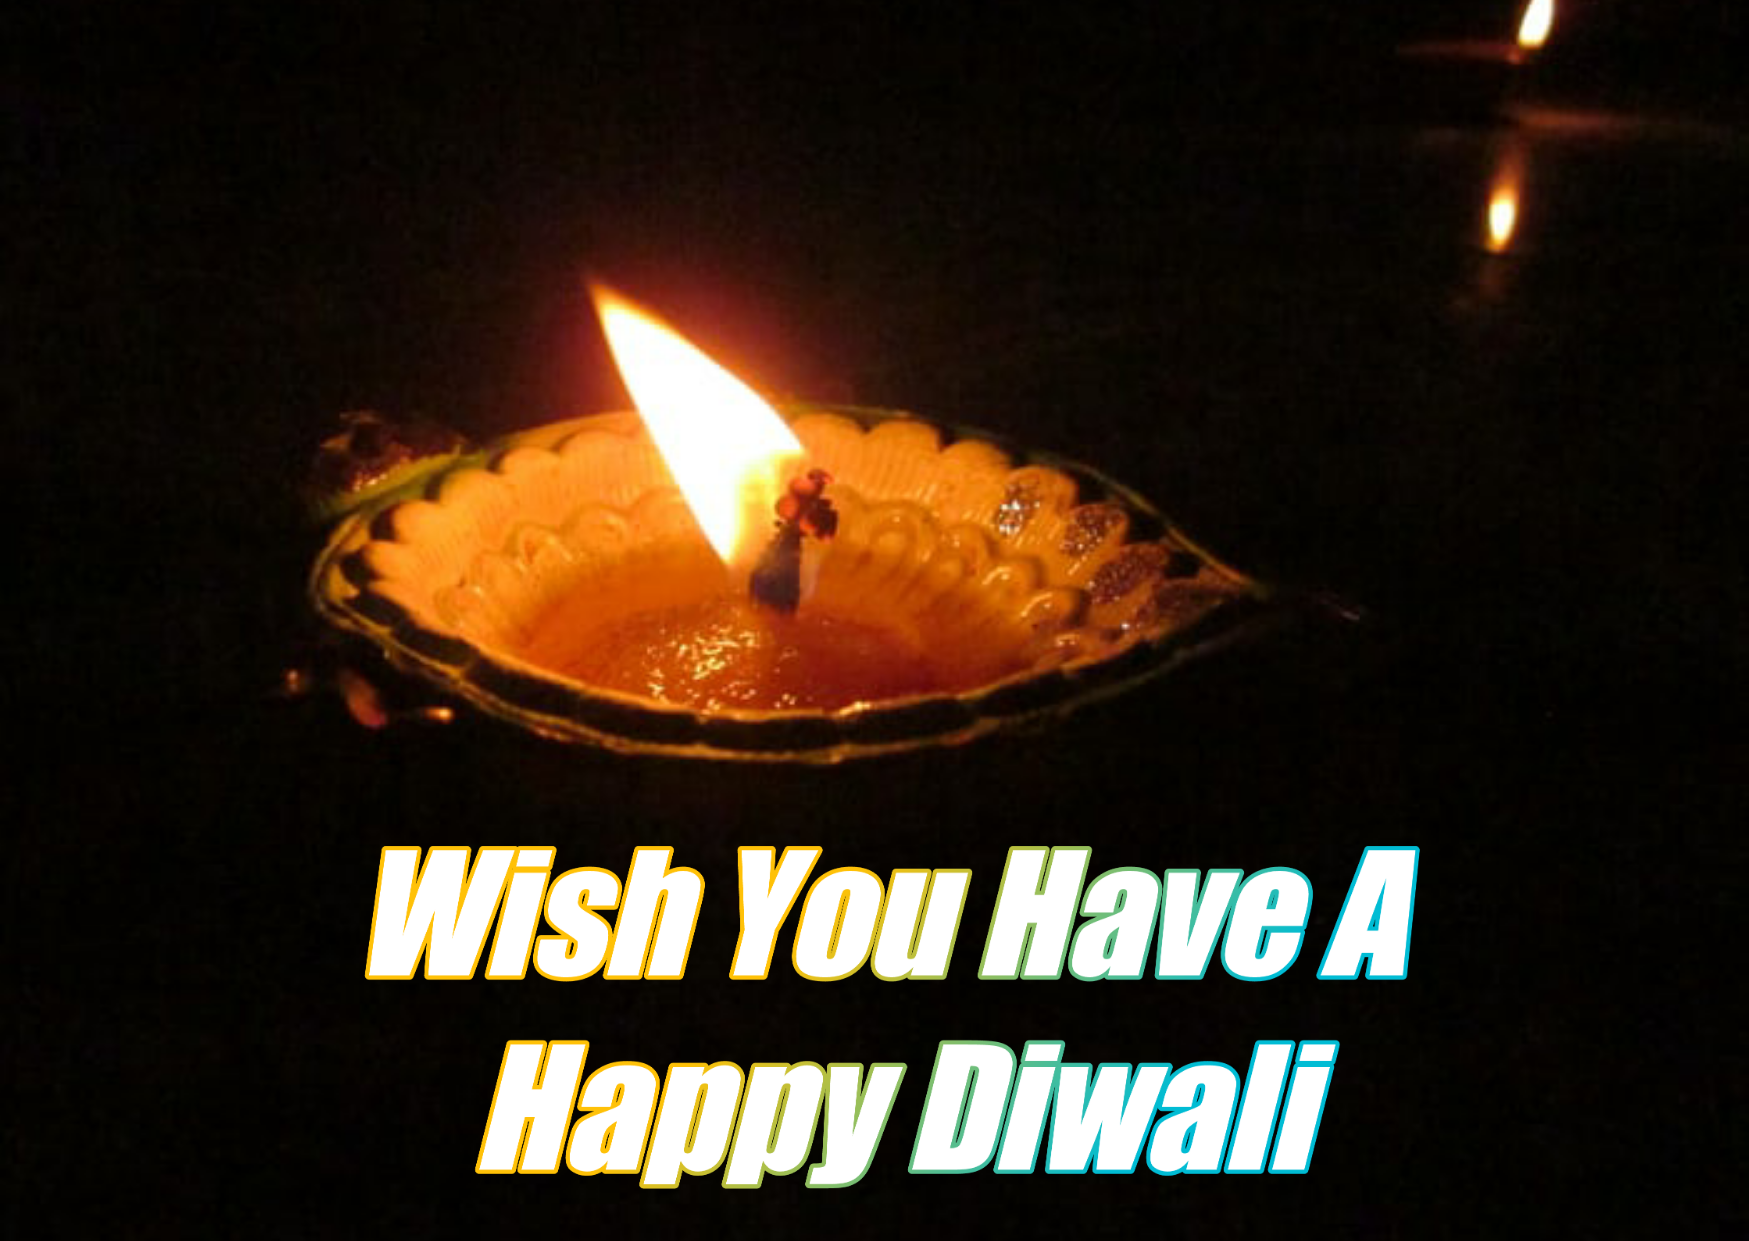 Happy Diwali Wishes 2020 Images, quotes, status, greeting for whatsapp free download,